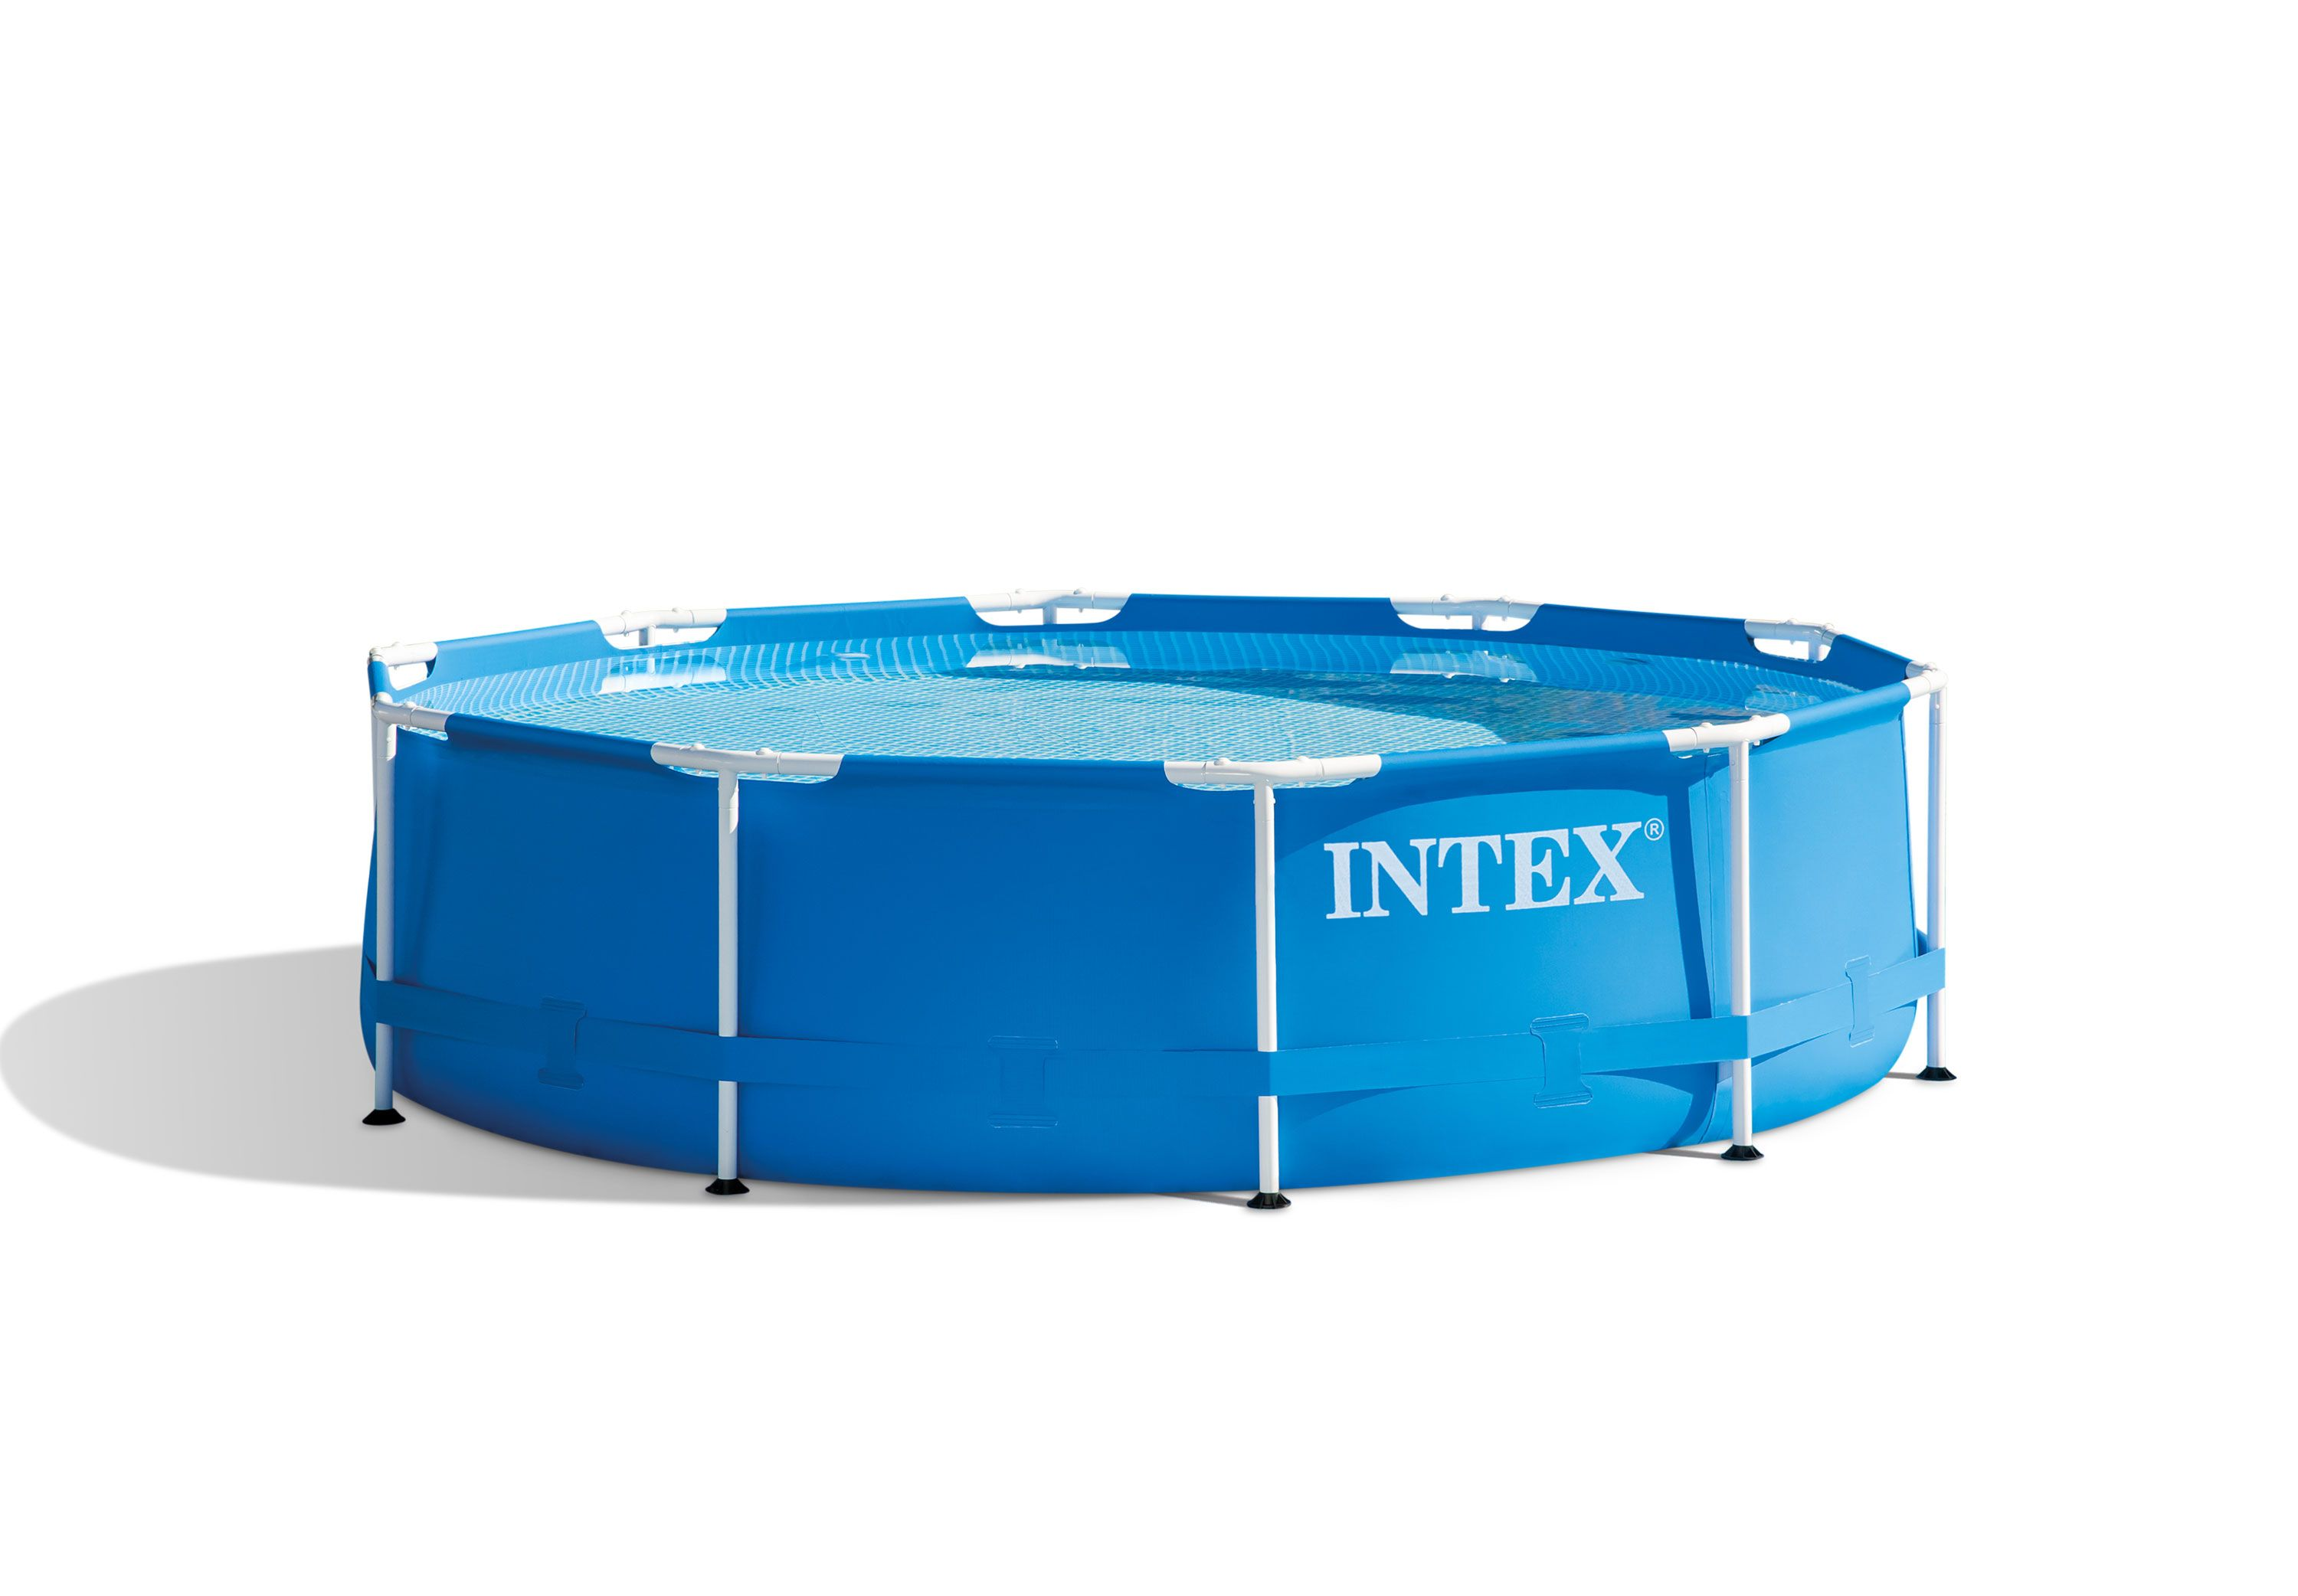 The INTEX Ultra Frame 14 Ft X 42 In Round Pool Set With 1,000 Gal Filter  Pump Features A Powder Coat Steel Frame And SUPER TOUGH™ Laminated  Sidewalls.